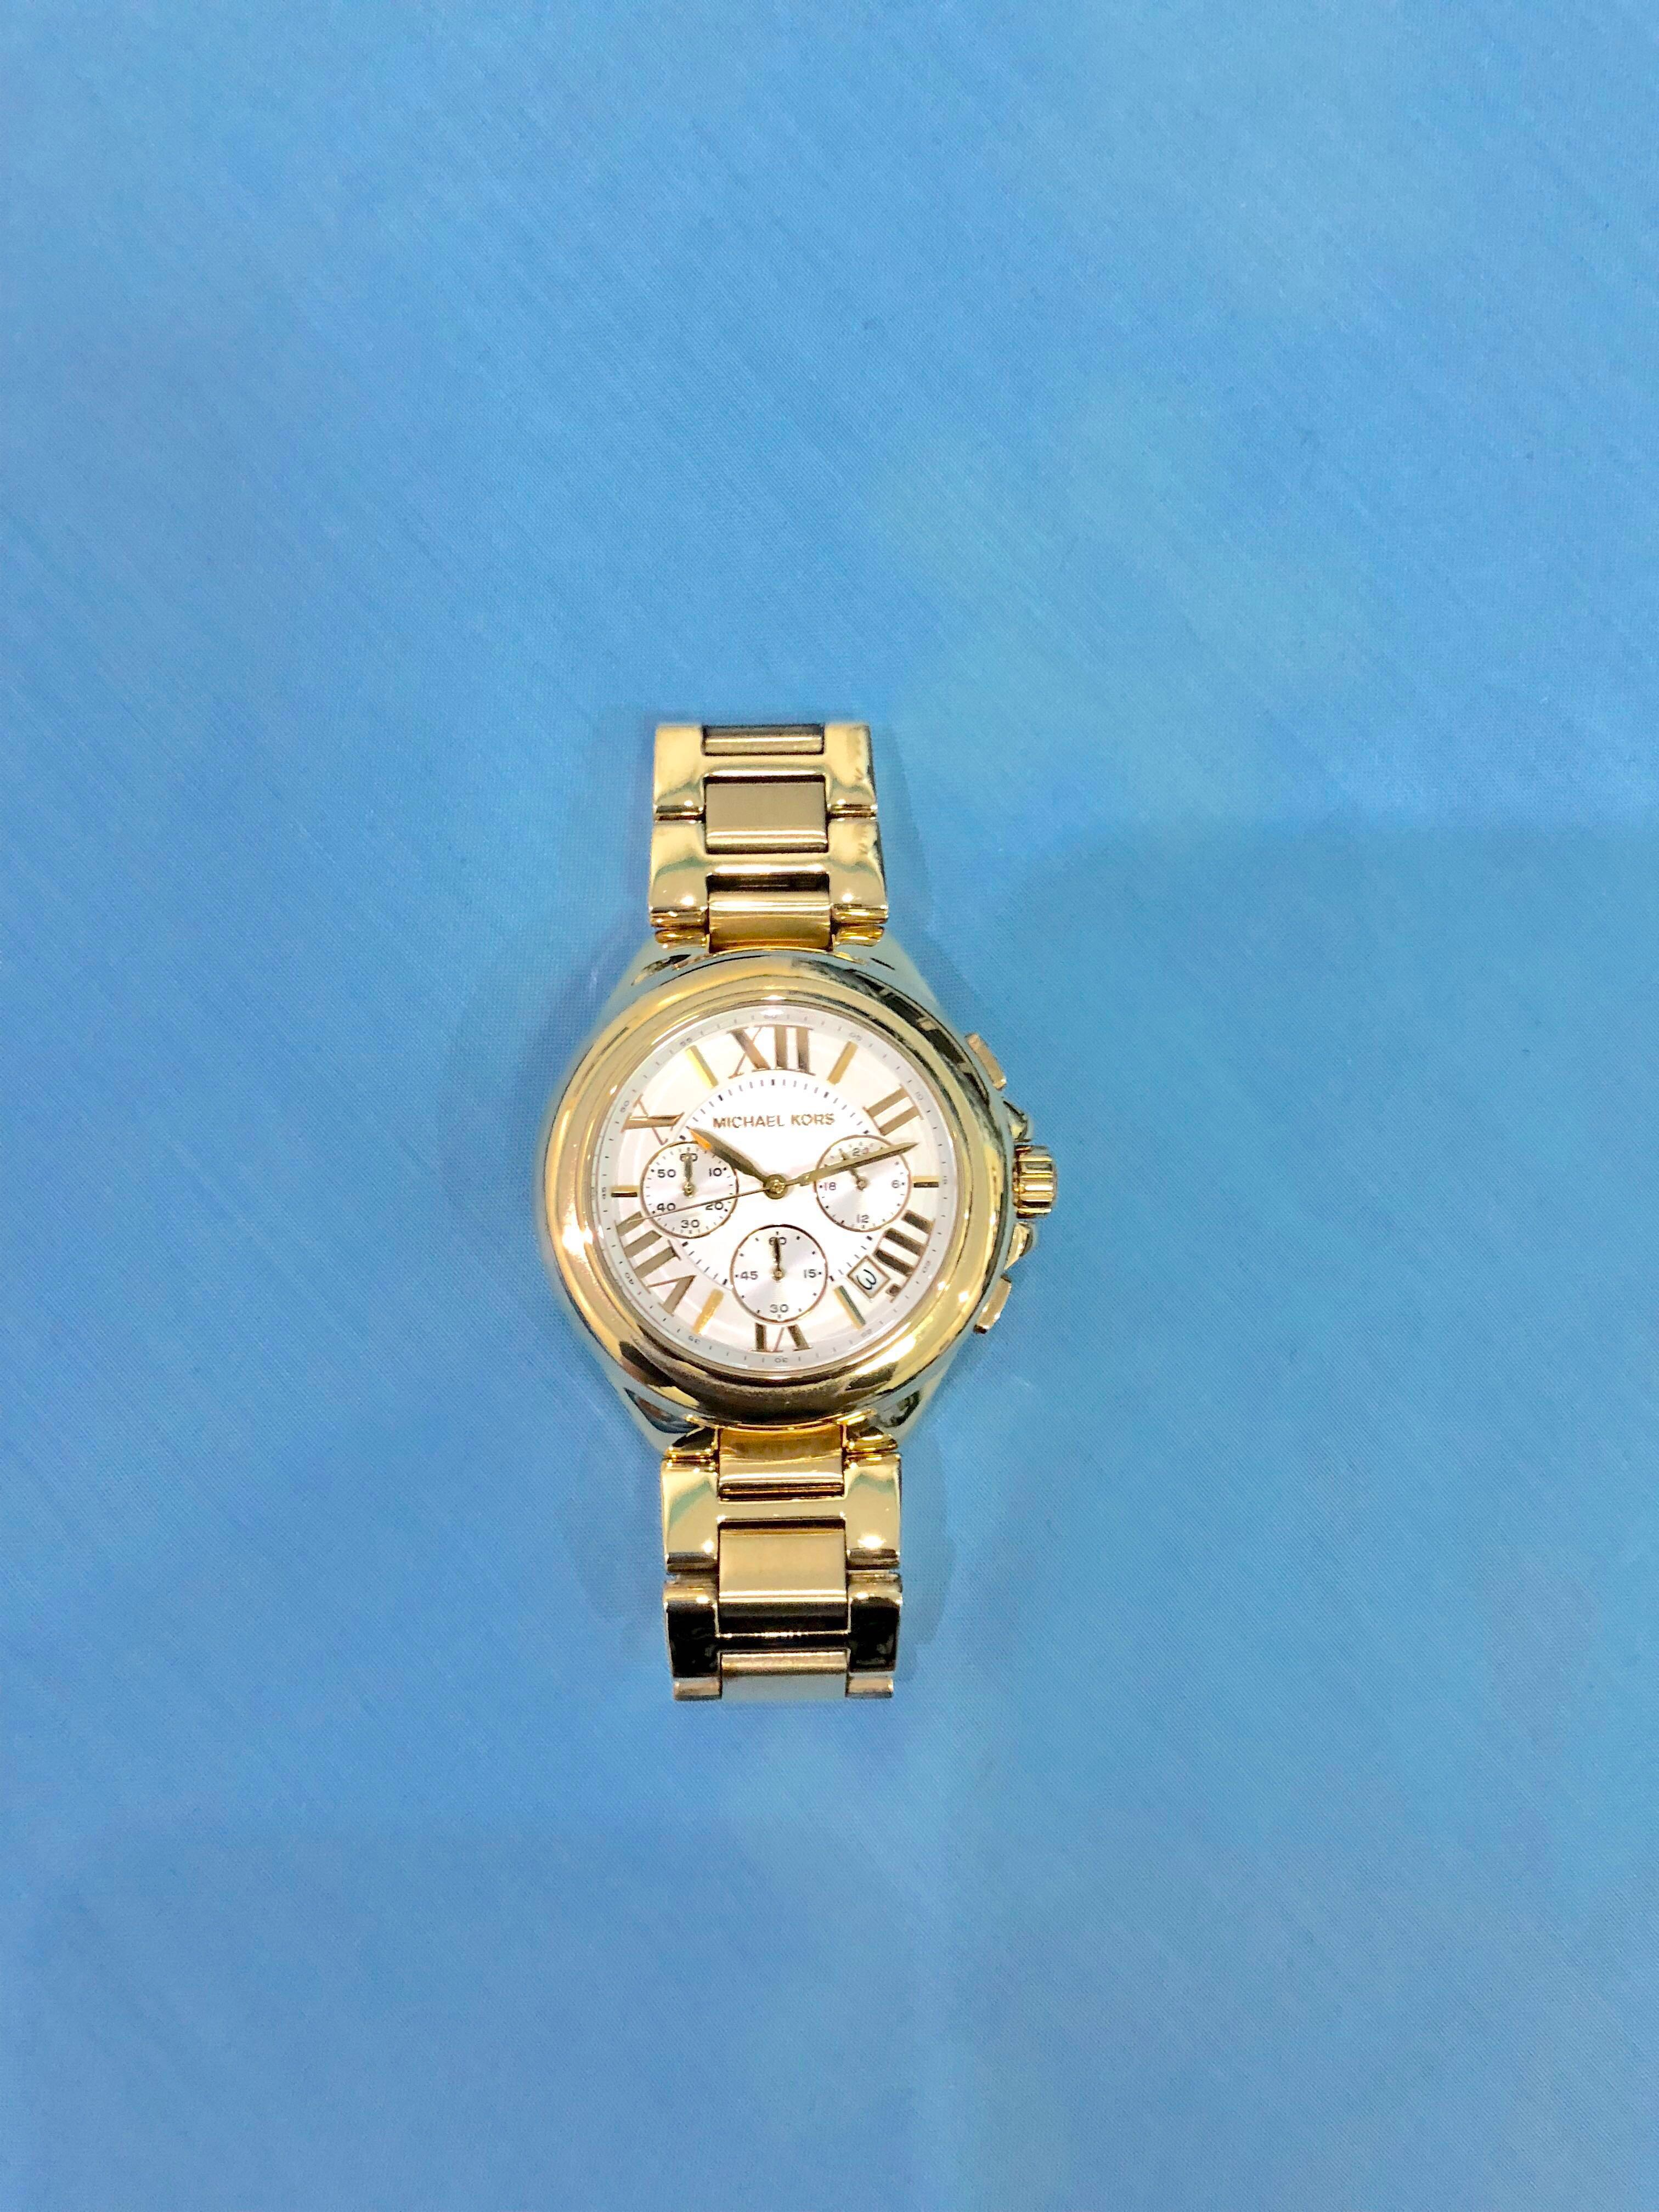 97f3820c86d6 Michael Kors Camille Gold Watch MK5635, Women's Fashion, Watches on ...